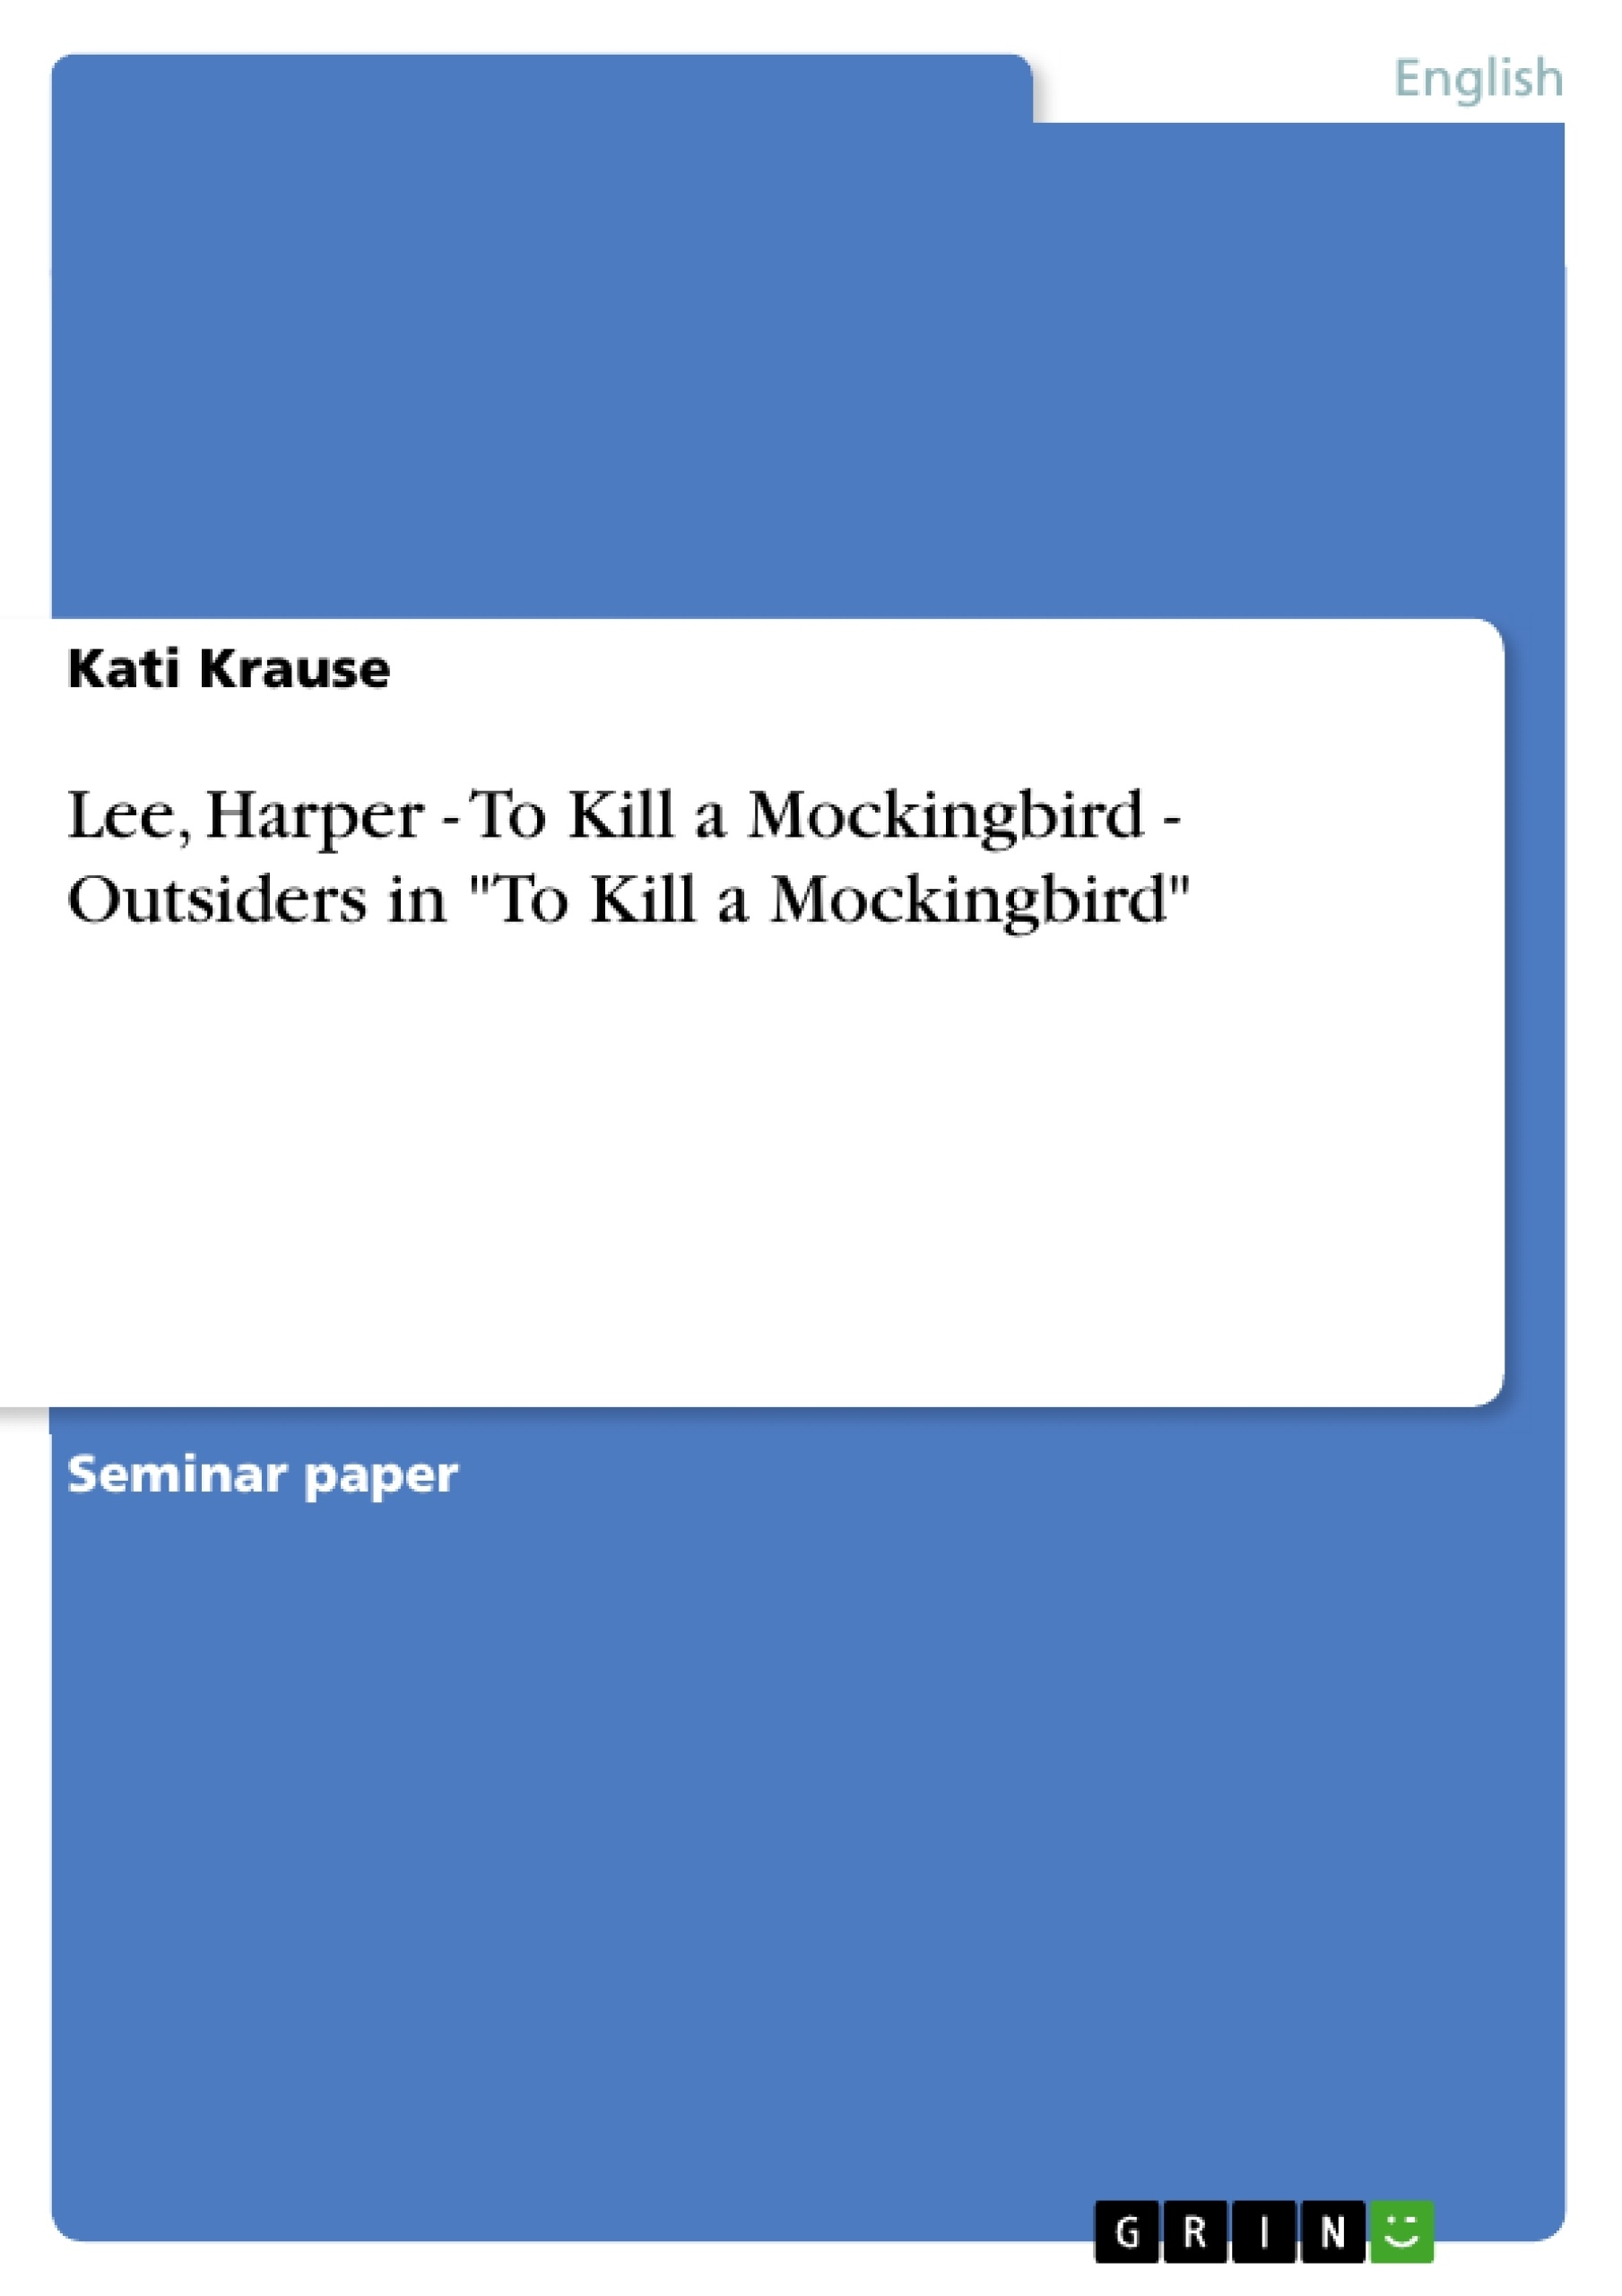 research paper on to kill a mockingbird